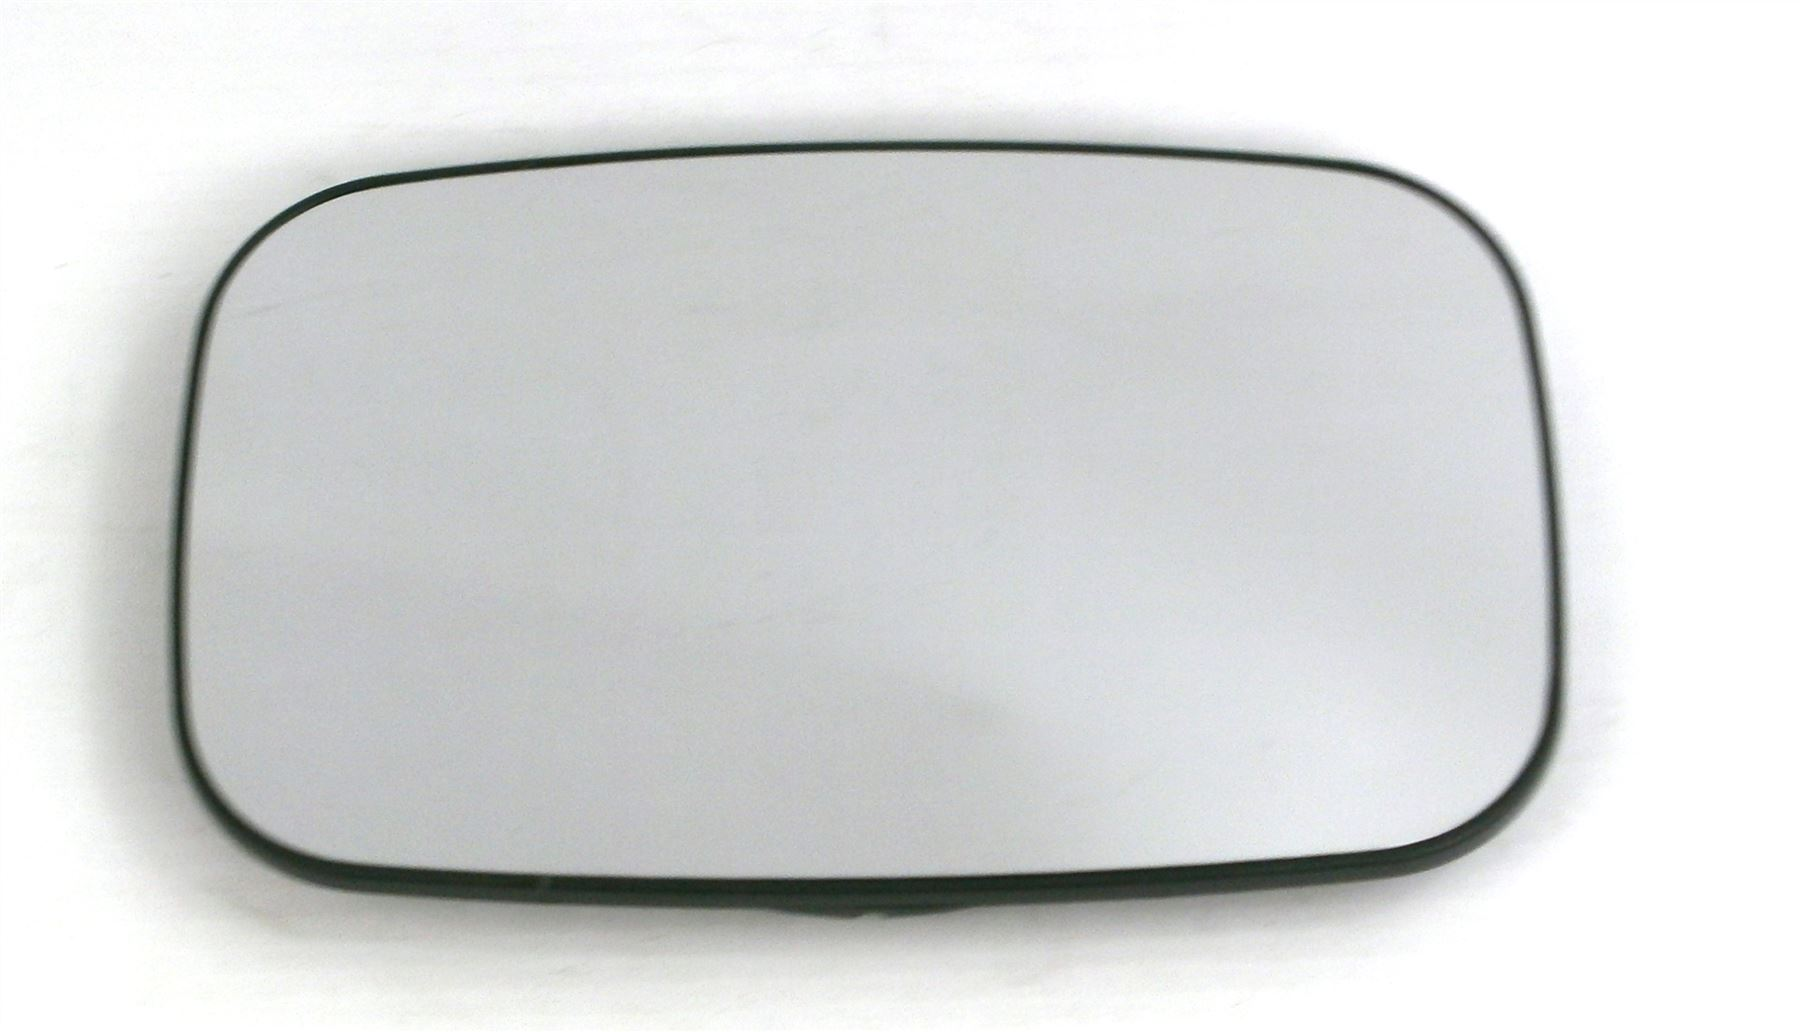 Rover Group MGTF 1995-1999 Non-Heated Convex Mirror Glass Passengers Side N/S